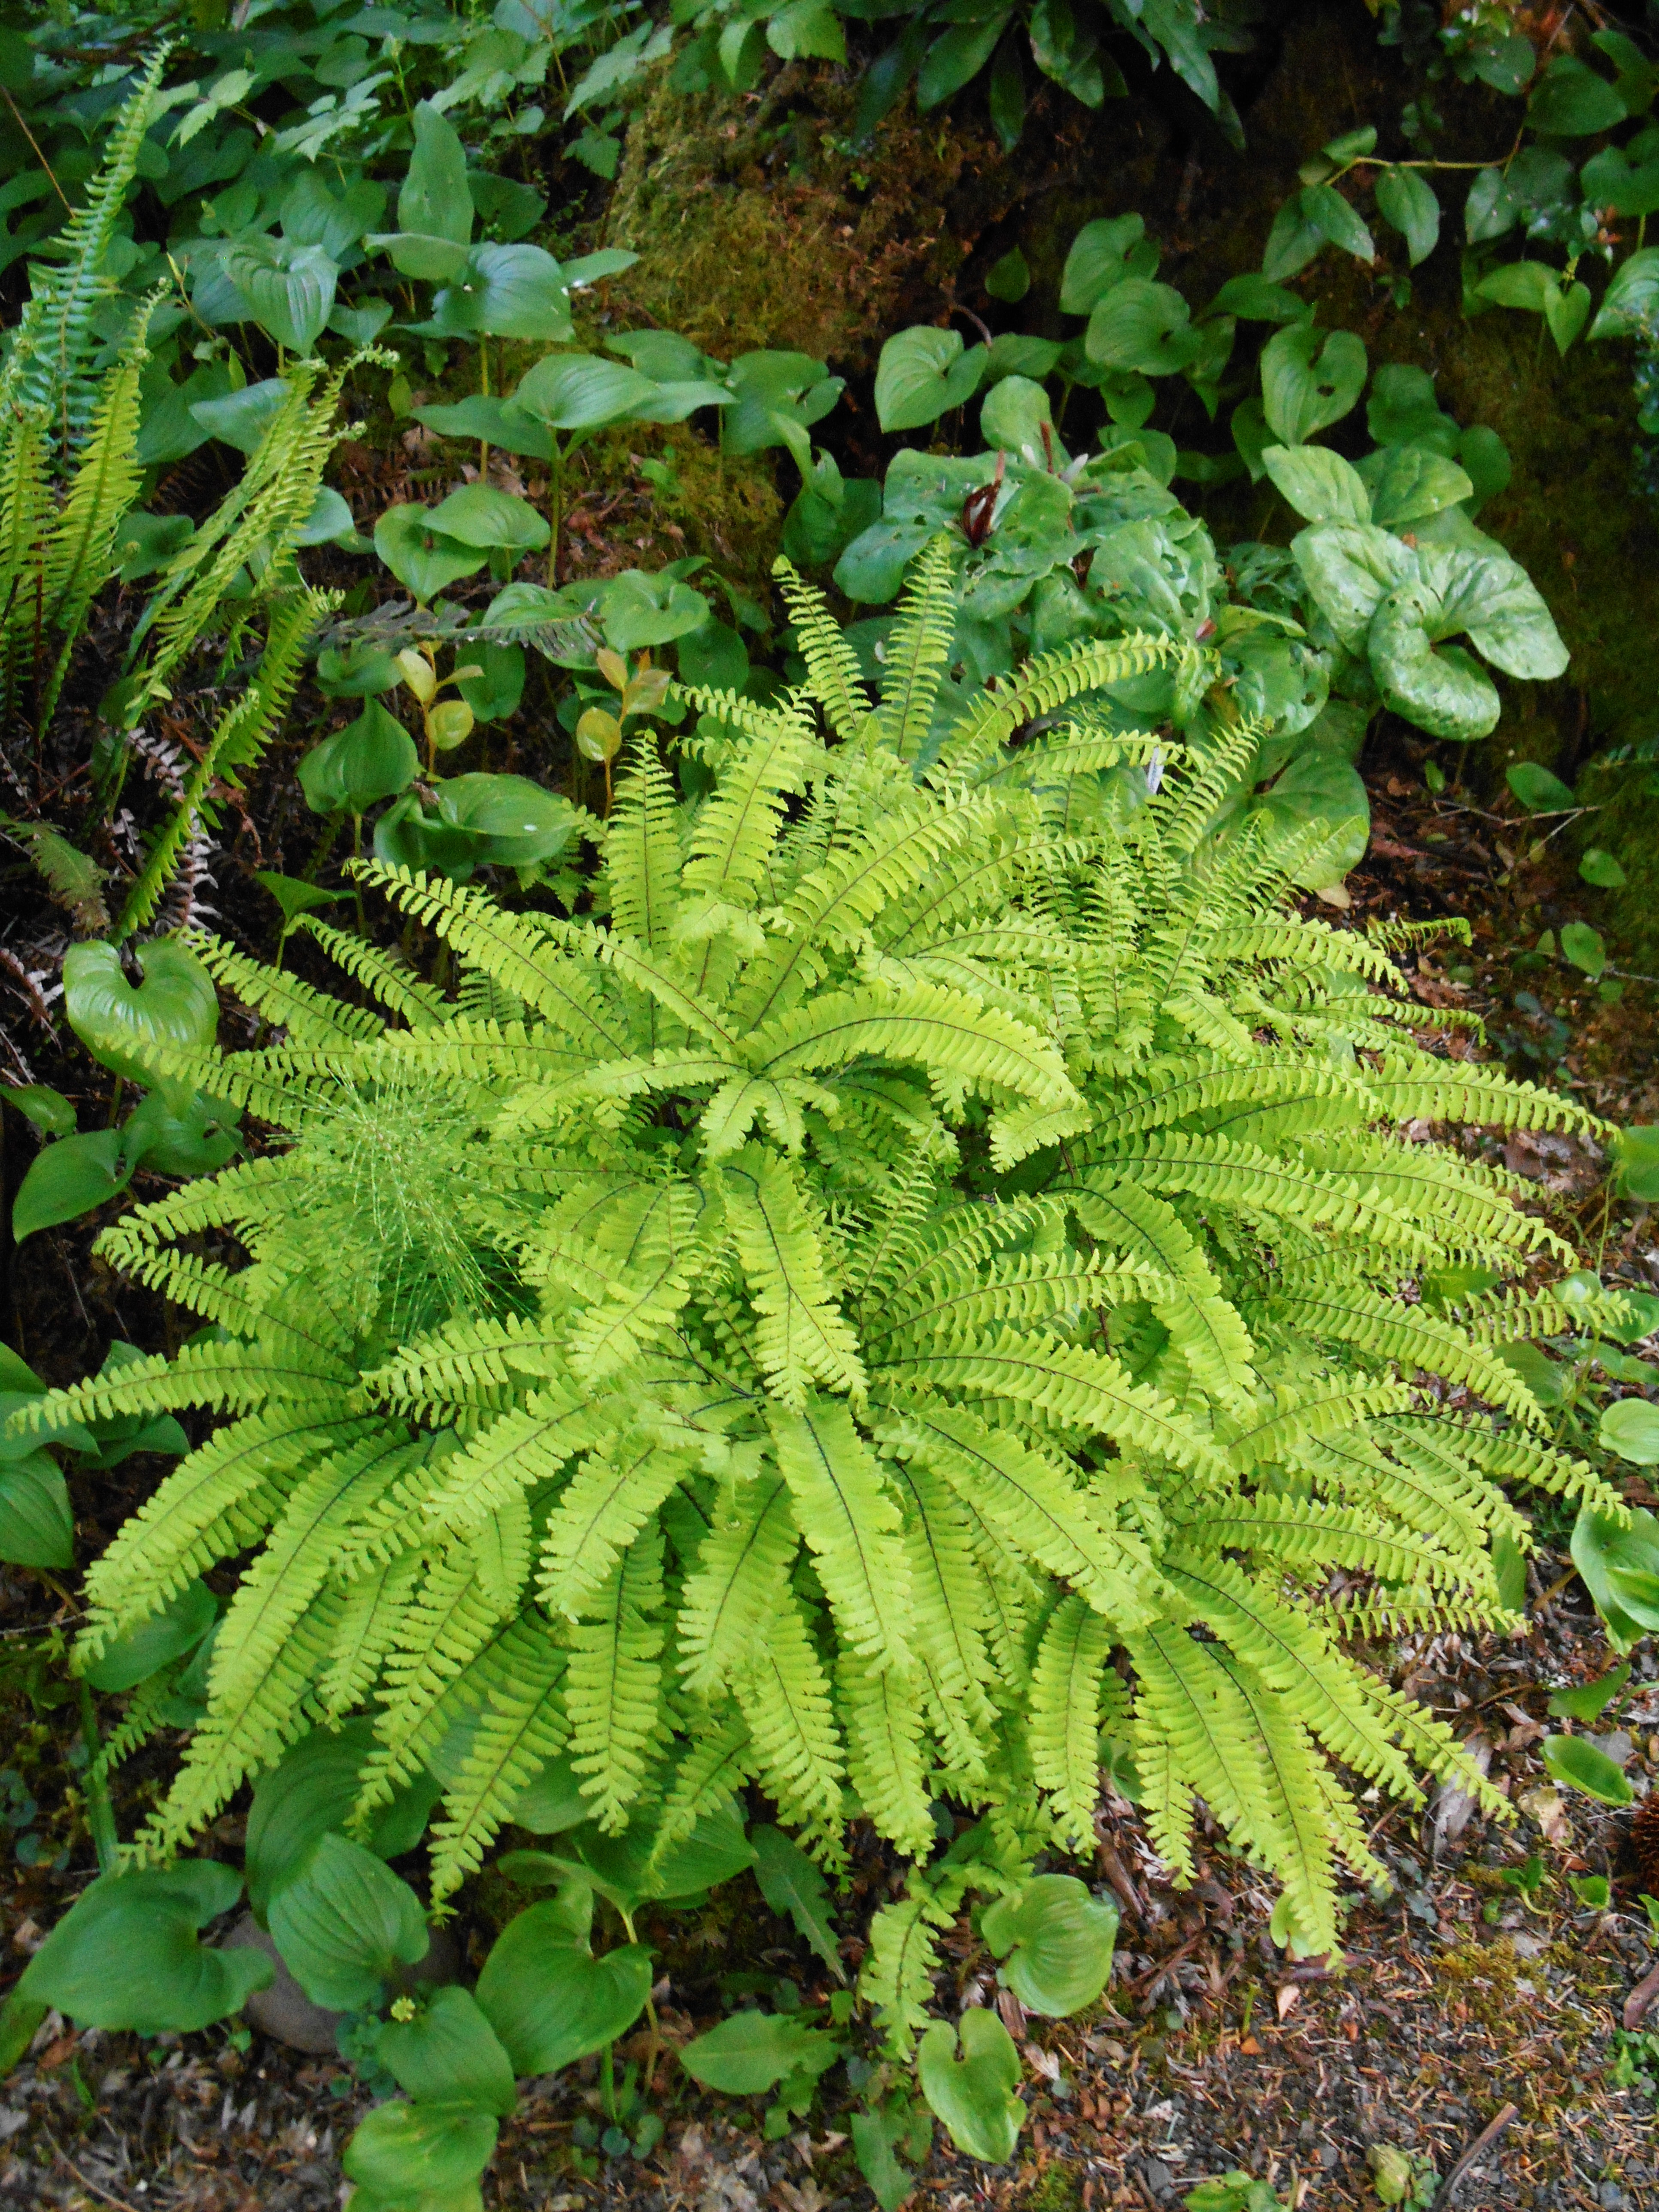 The Maidenhair fern native to Oregon isn't so very different from the Maidenhair fern we can grow in our garden. I will experiment with growing this beautiful fern.